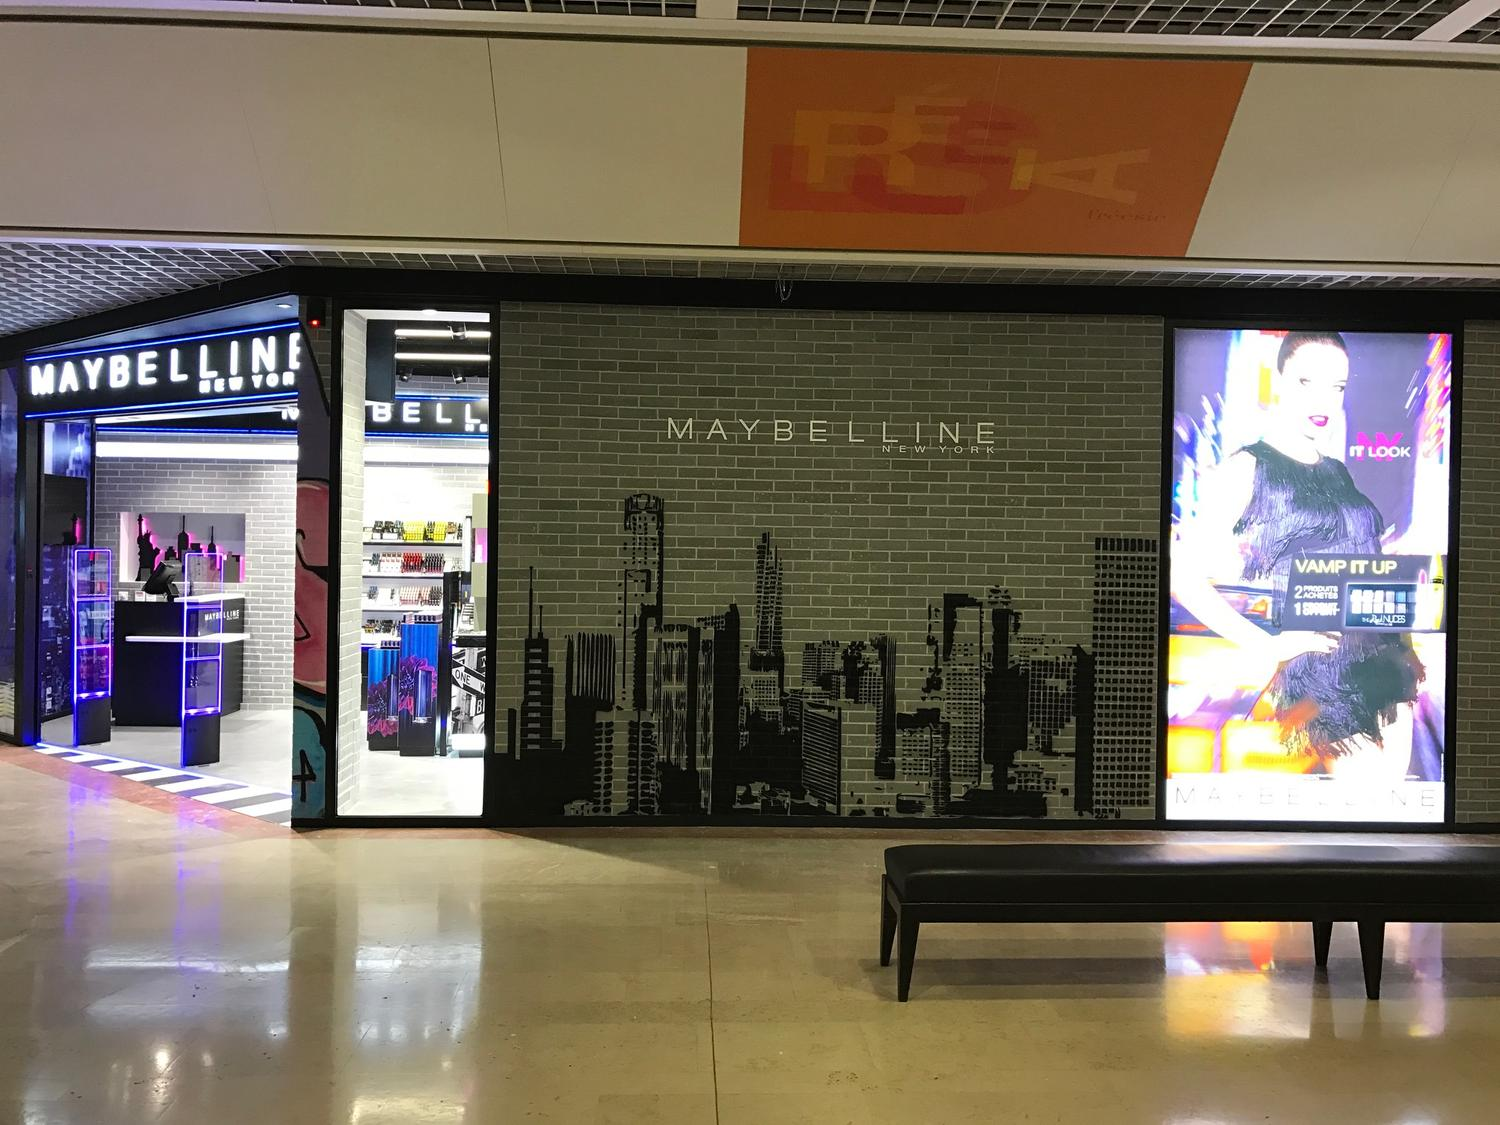 agencement boutique maybelline france